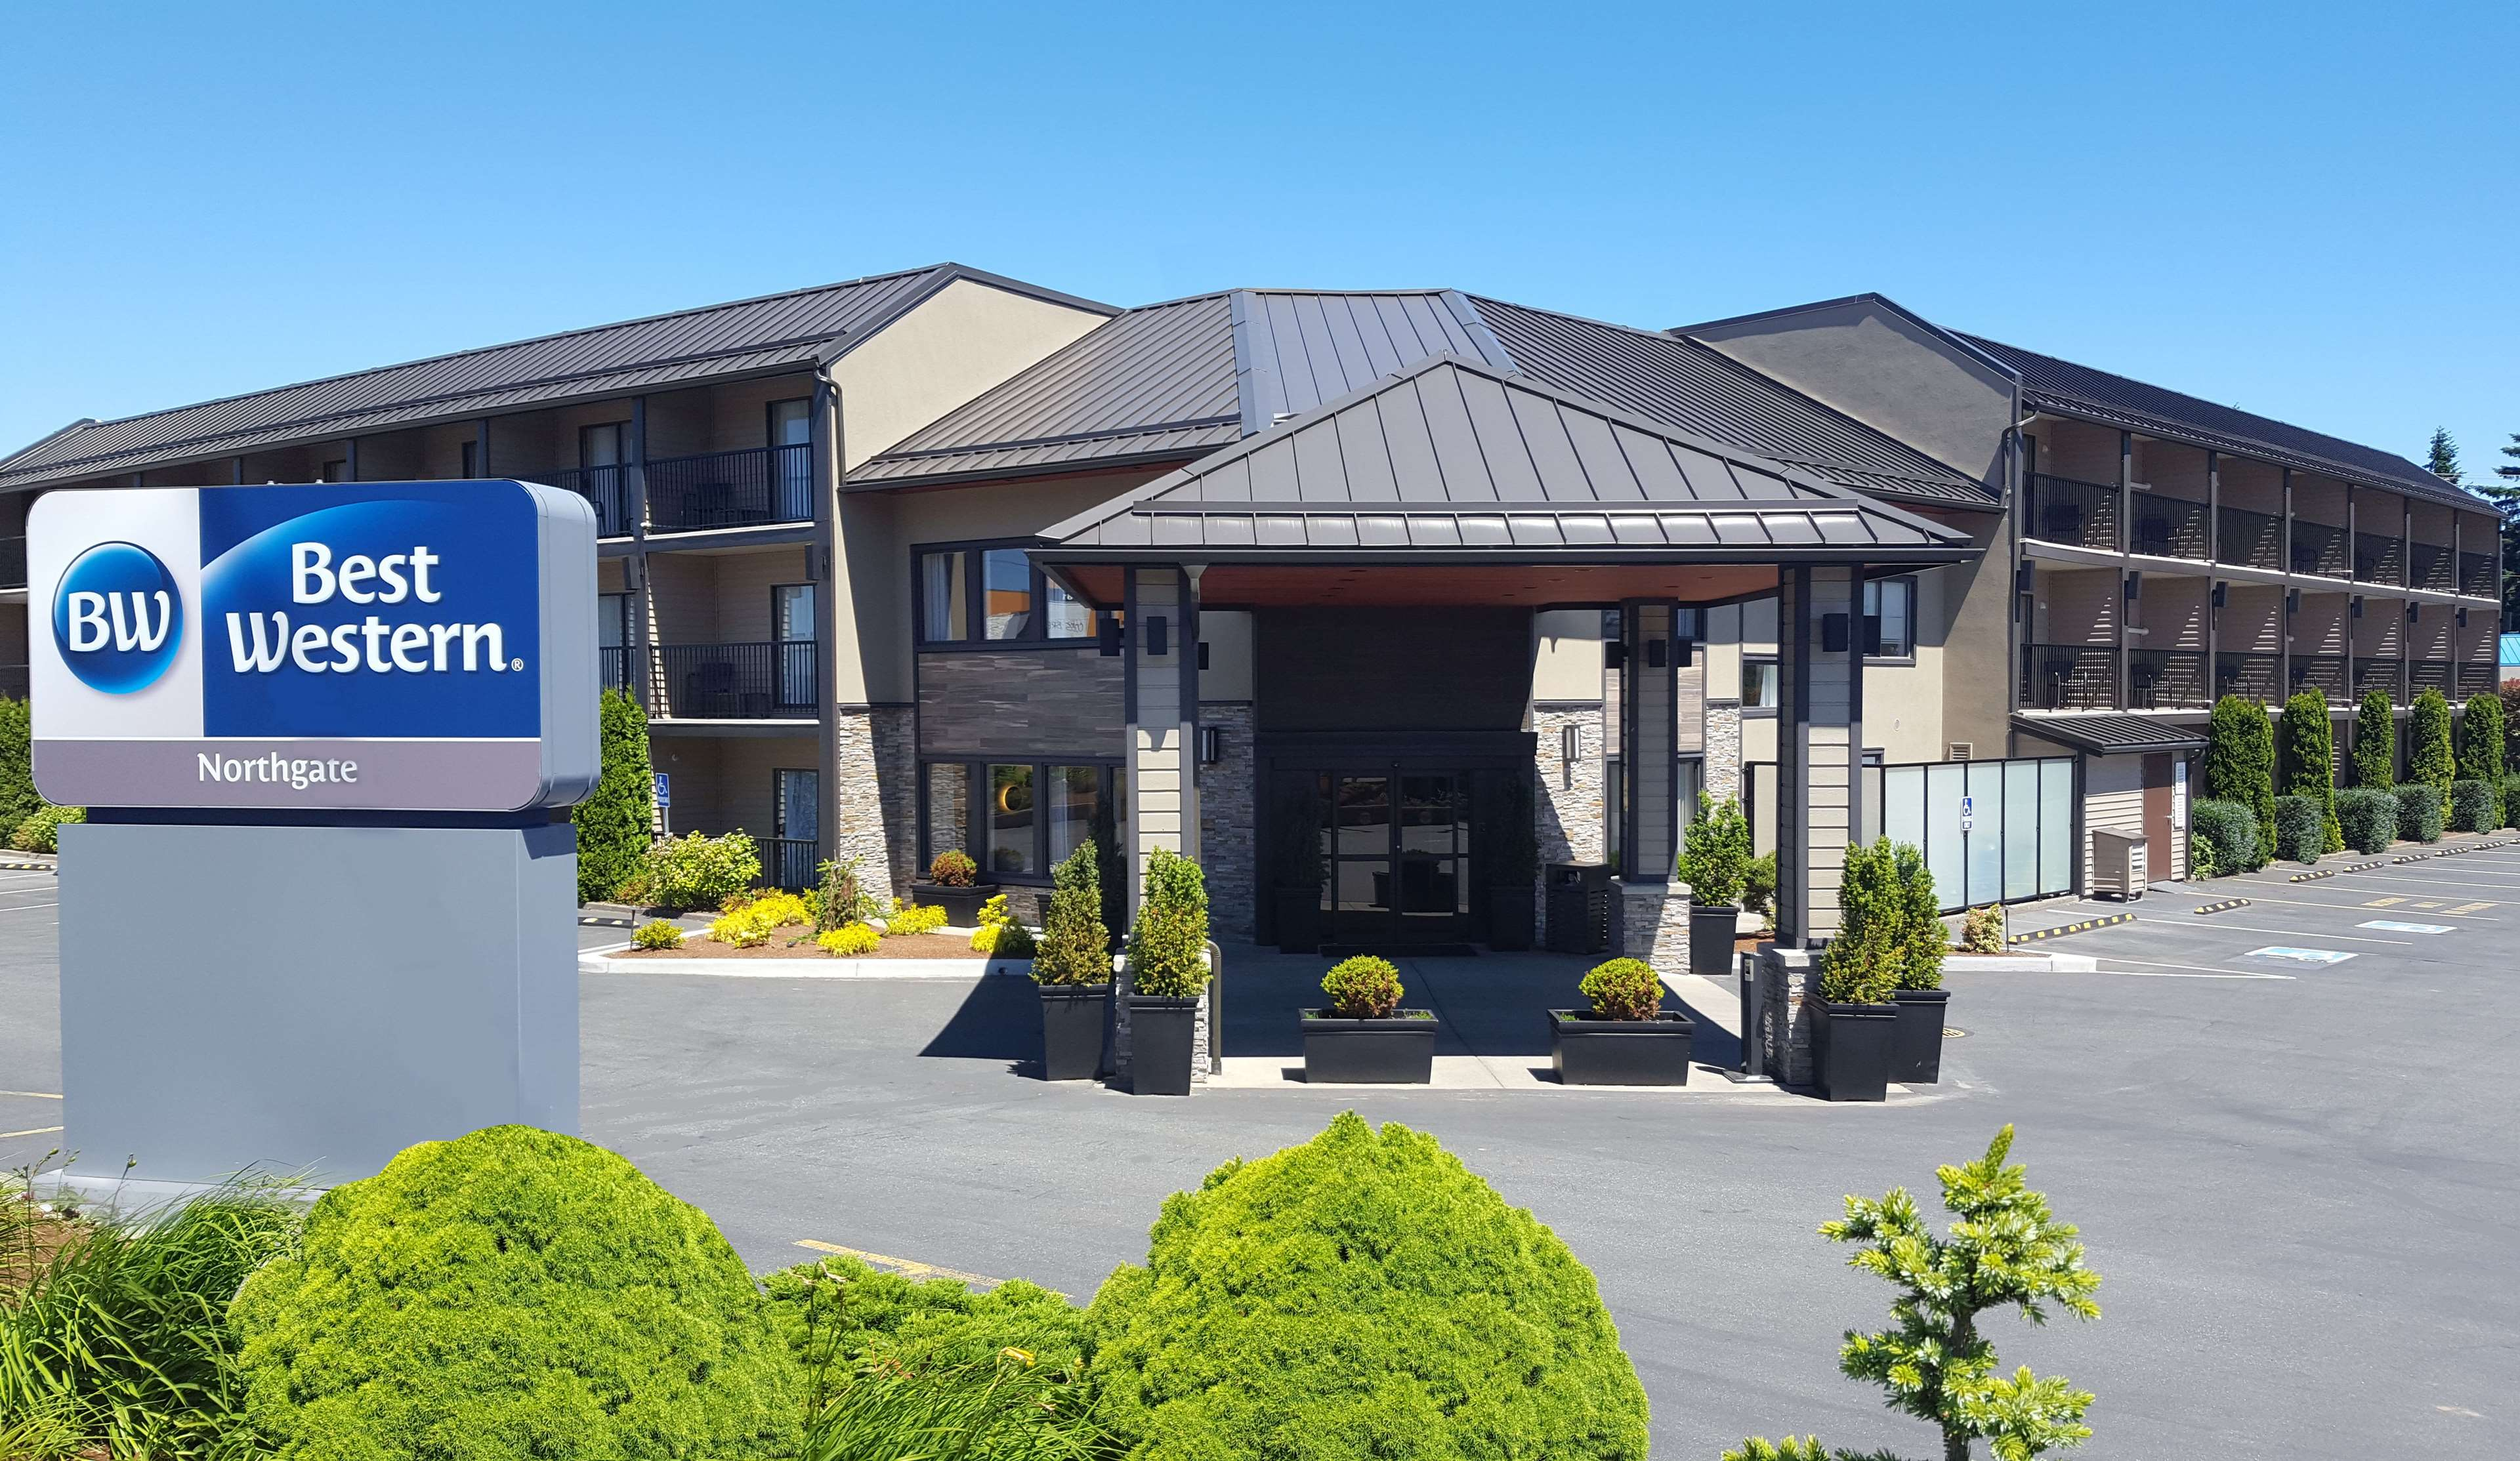 Best Western Hotel Nanaimo Bc